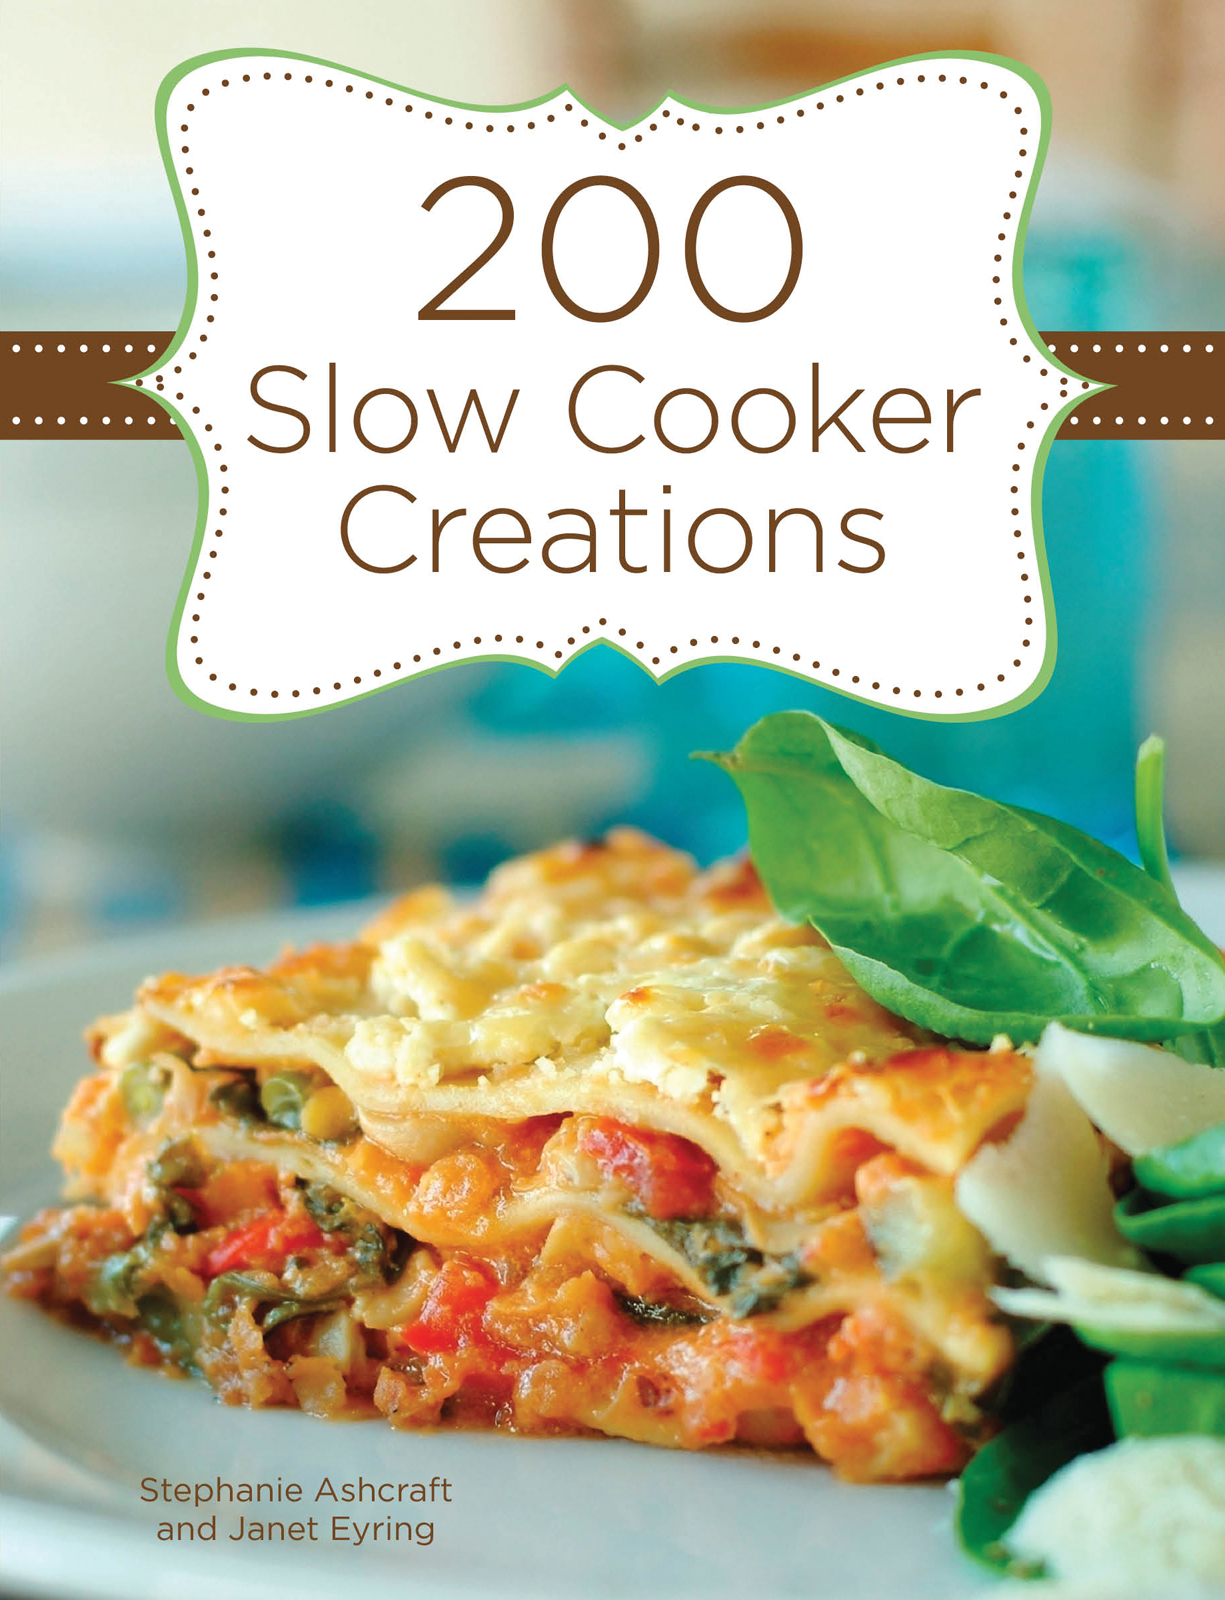 200 Slow Cooker Creations By: Janet Eyring,Stephanie Ashcraft